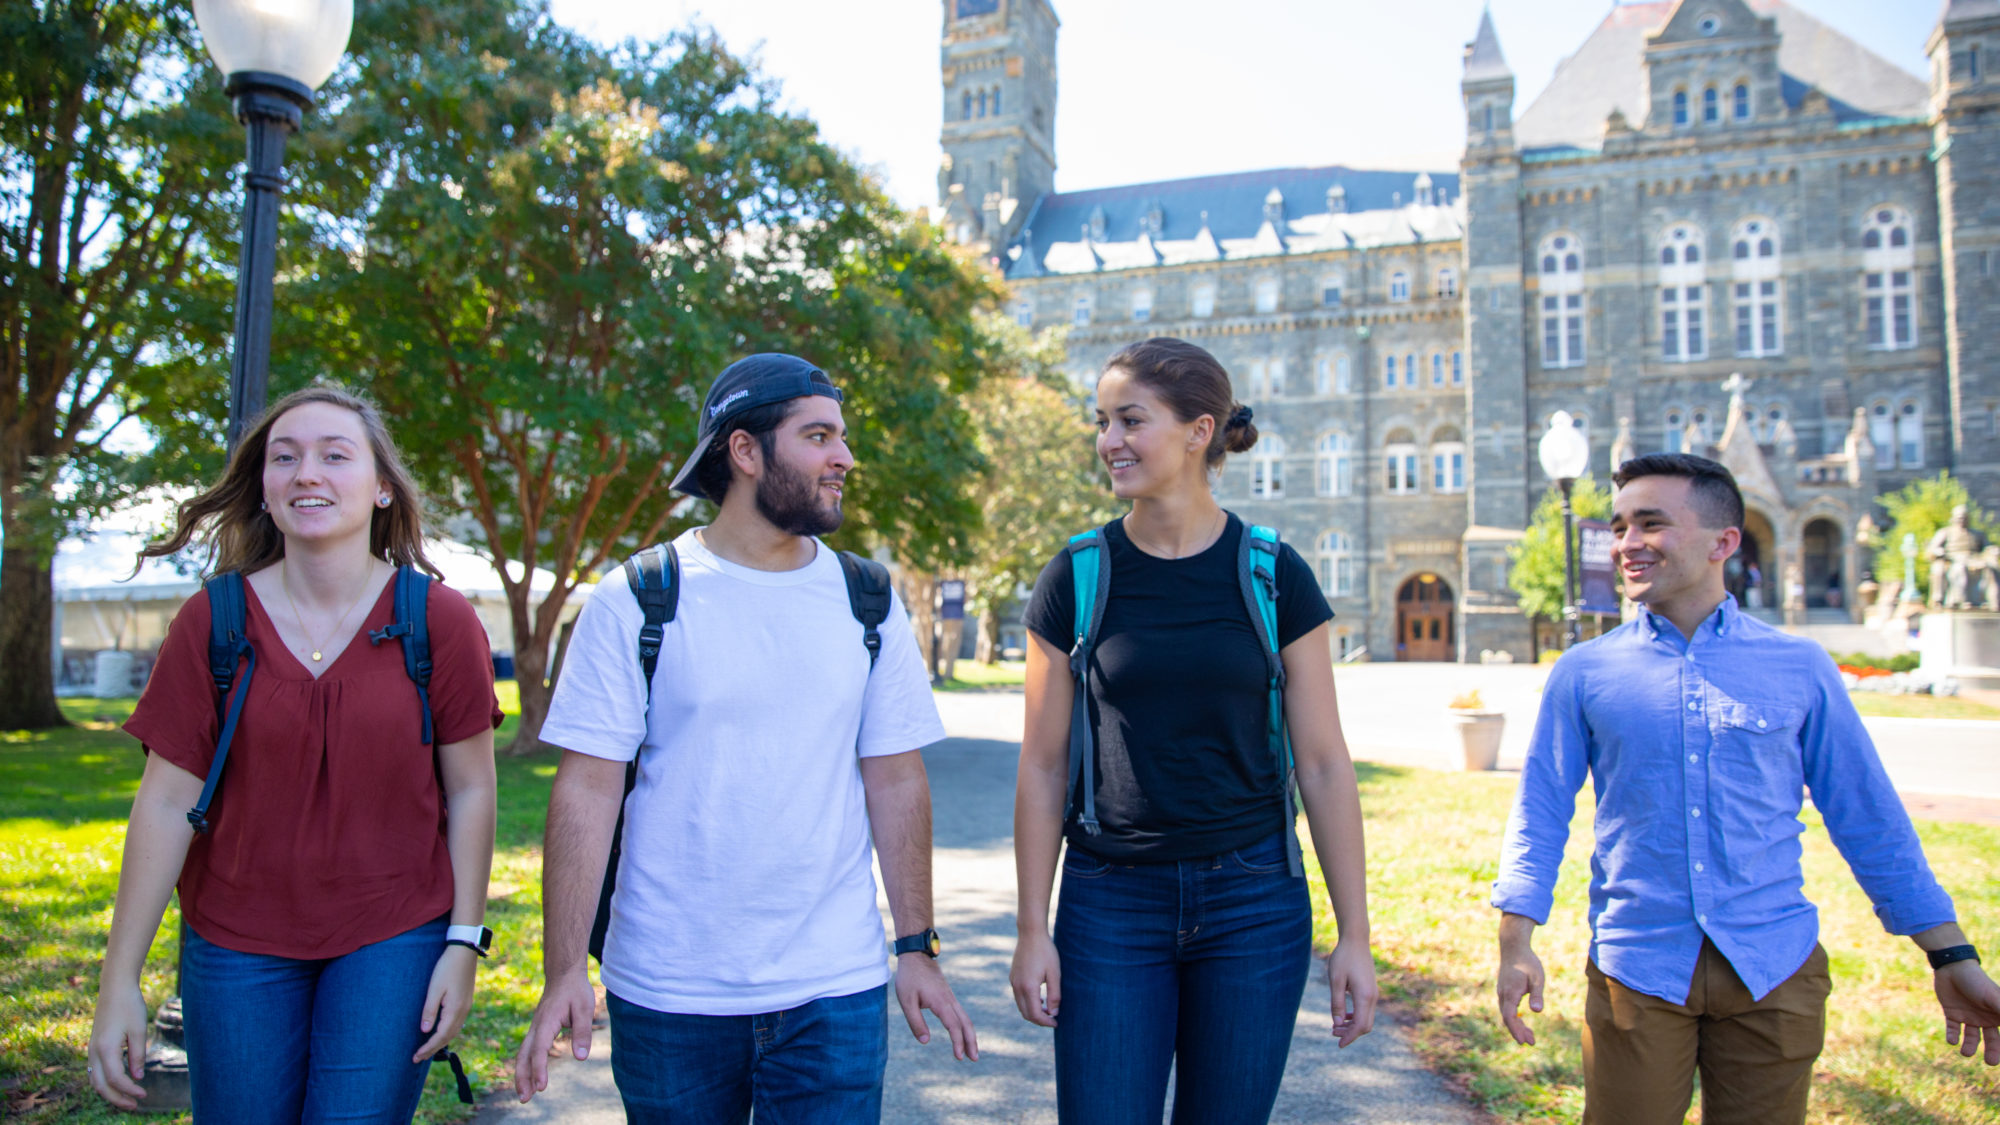 Four students with backpacks talking and walking through campus.